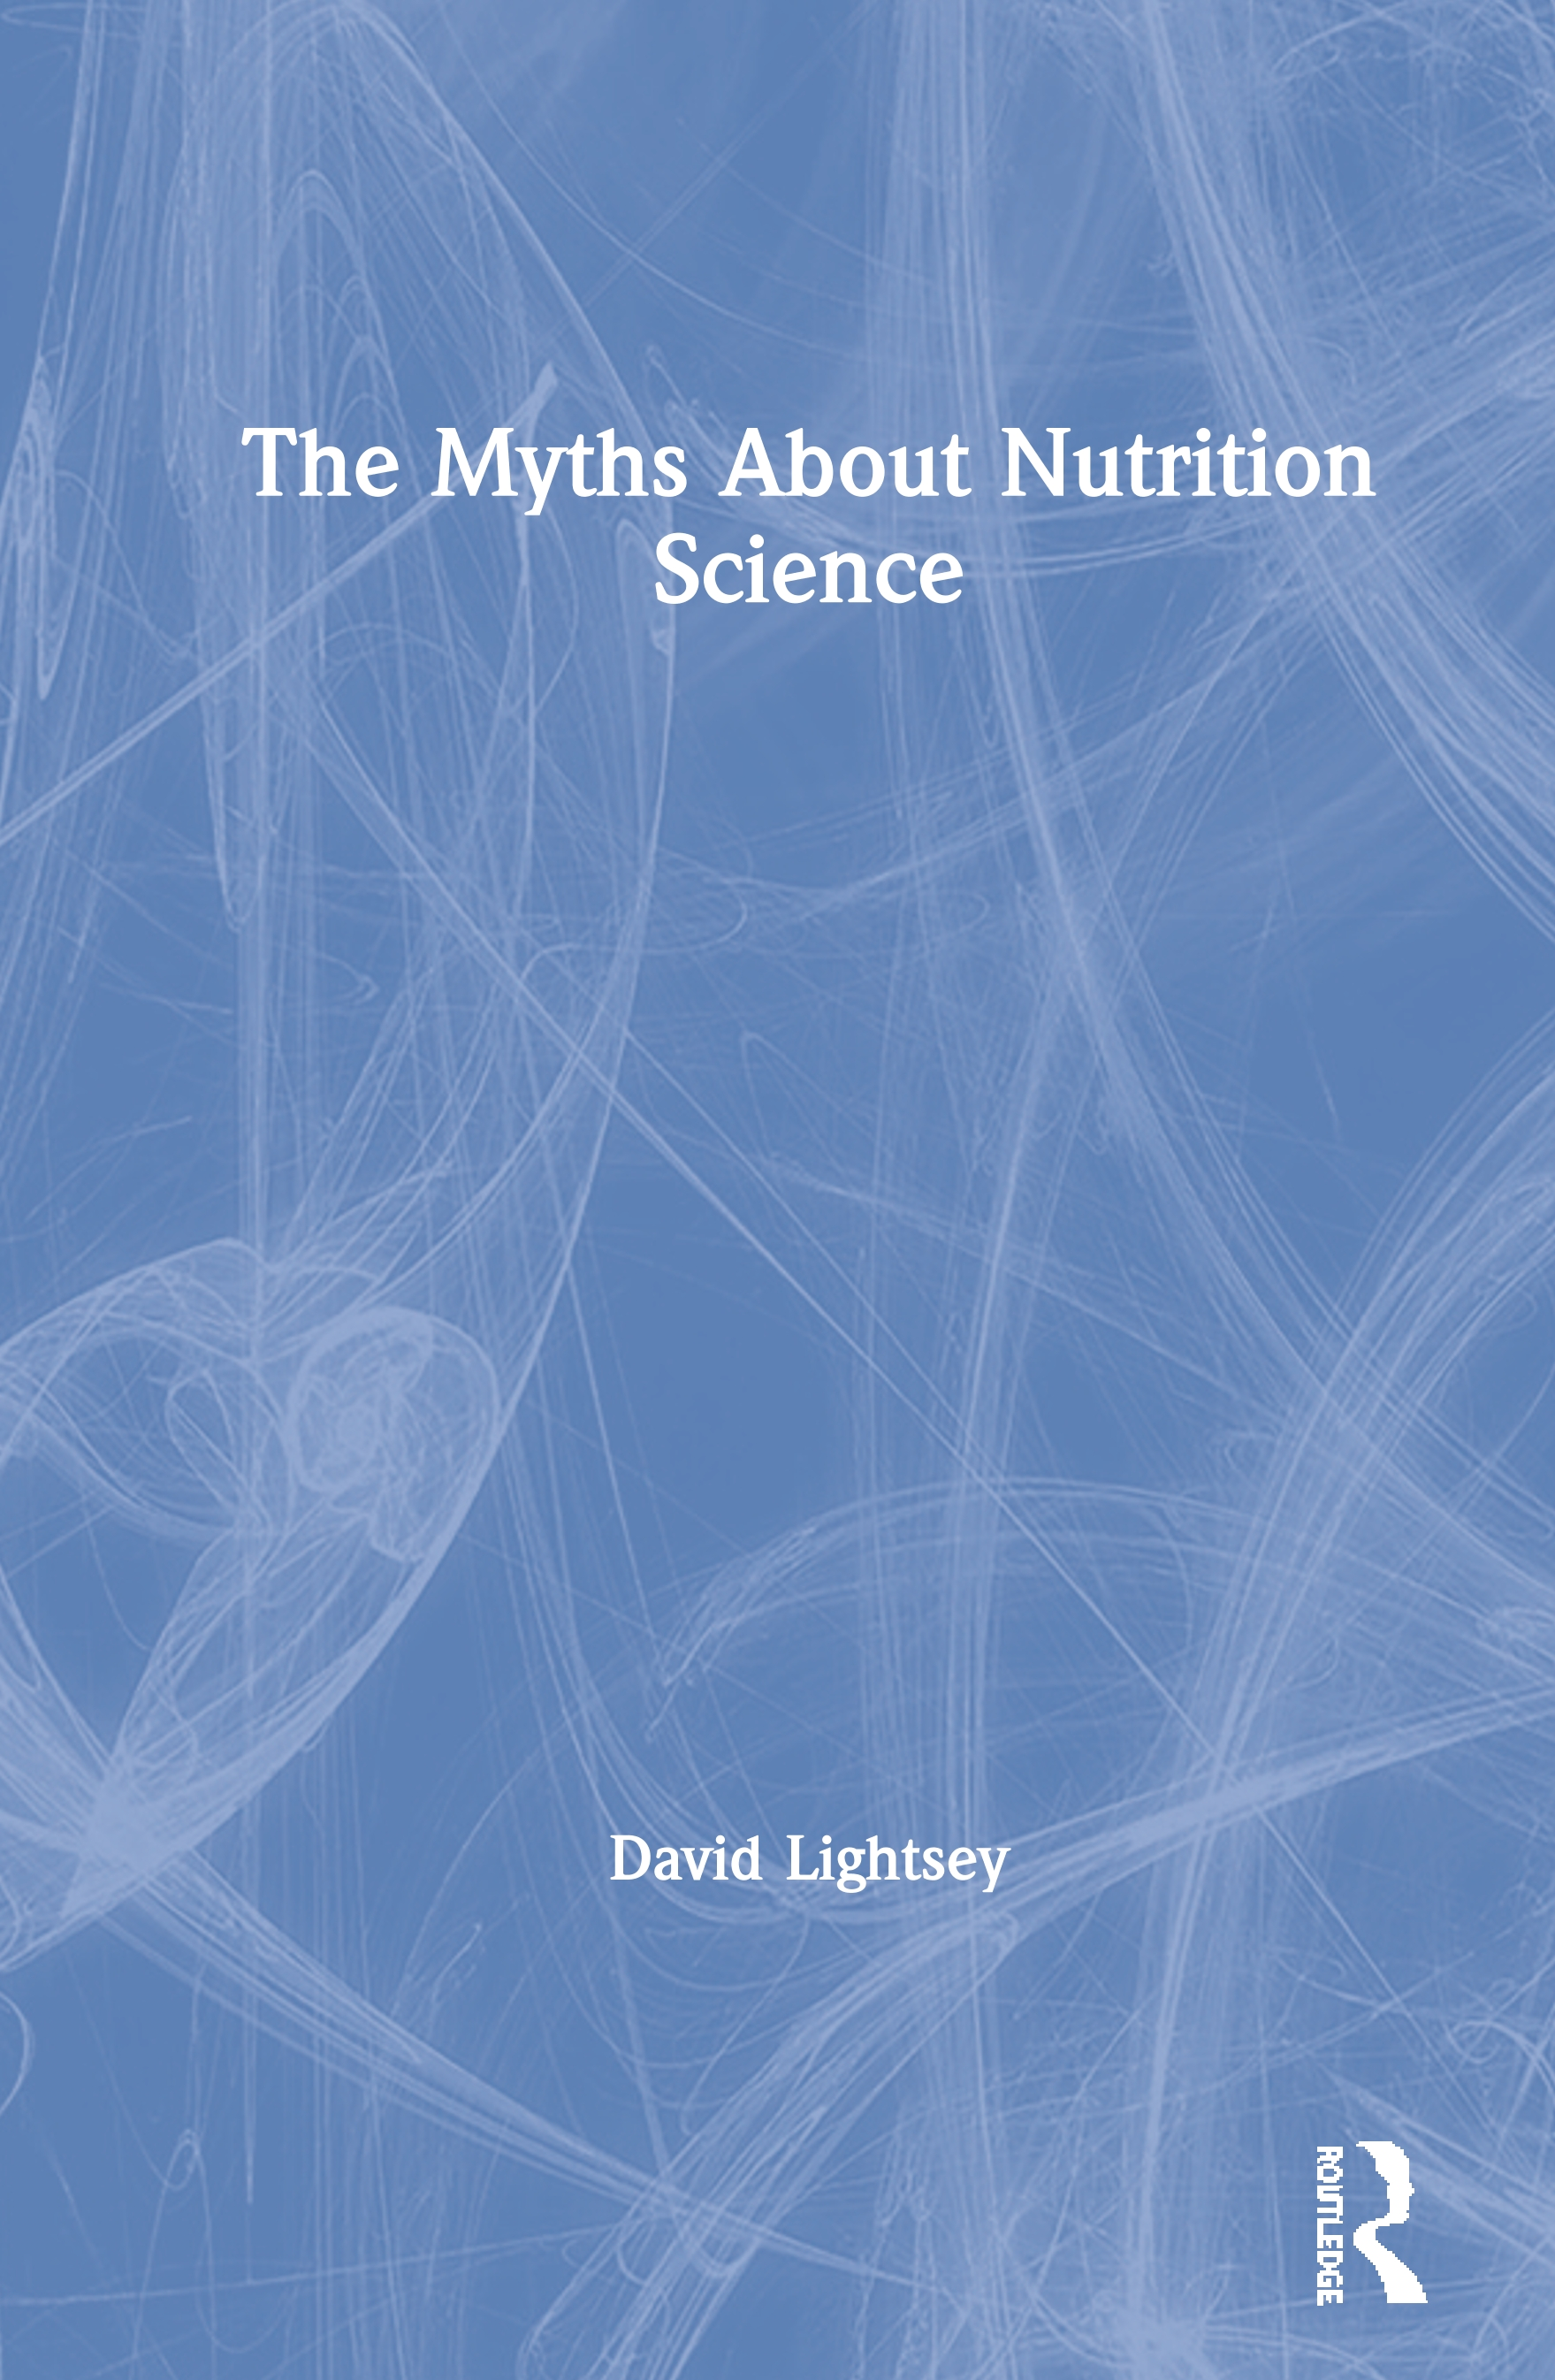 The Myths about Nutrition Science